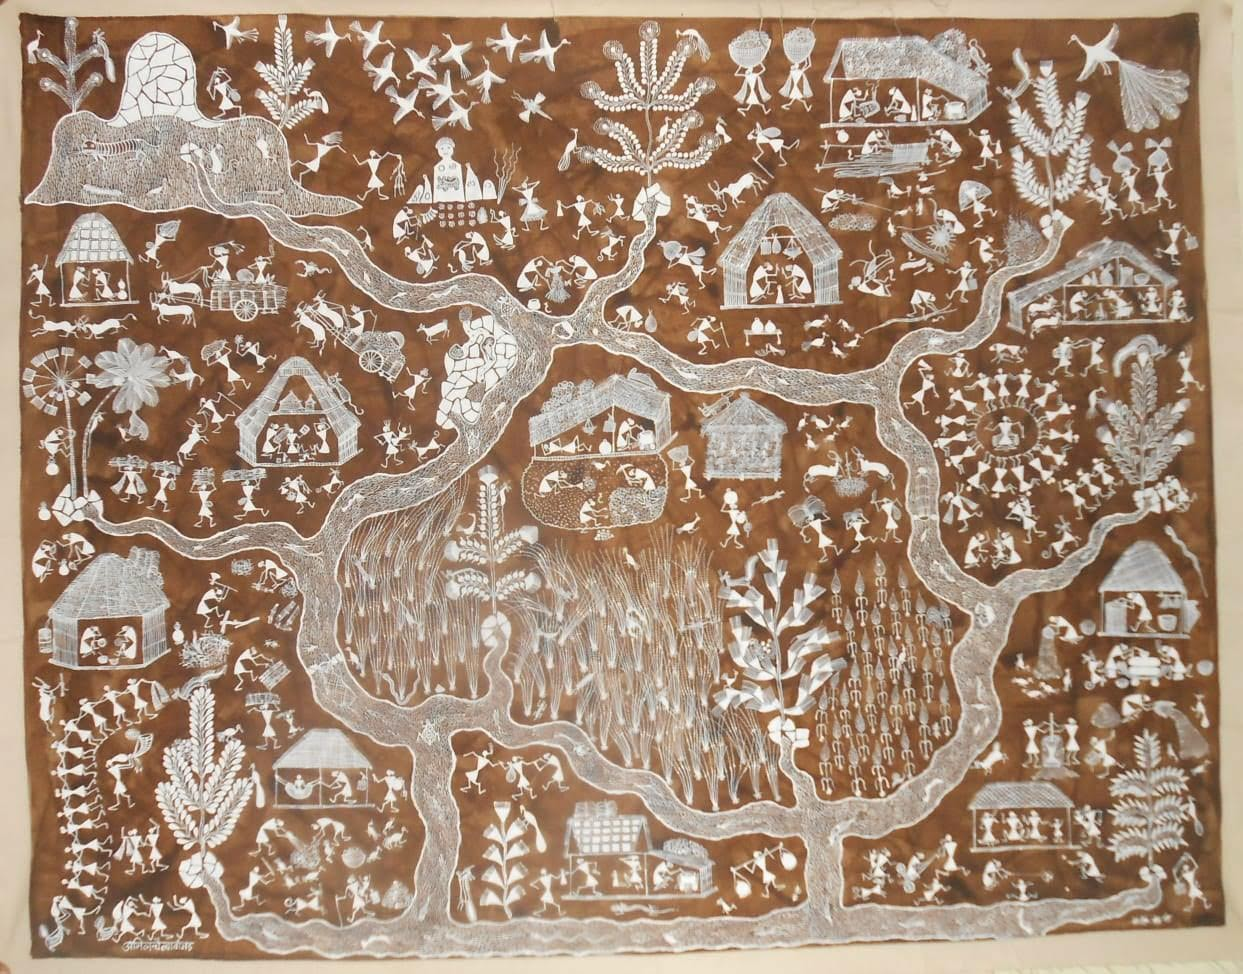 Village Life, Warli painting by Anil Wangad